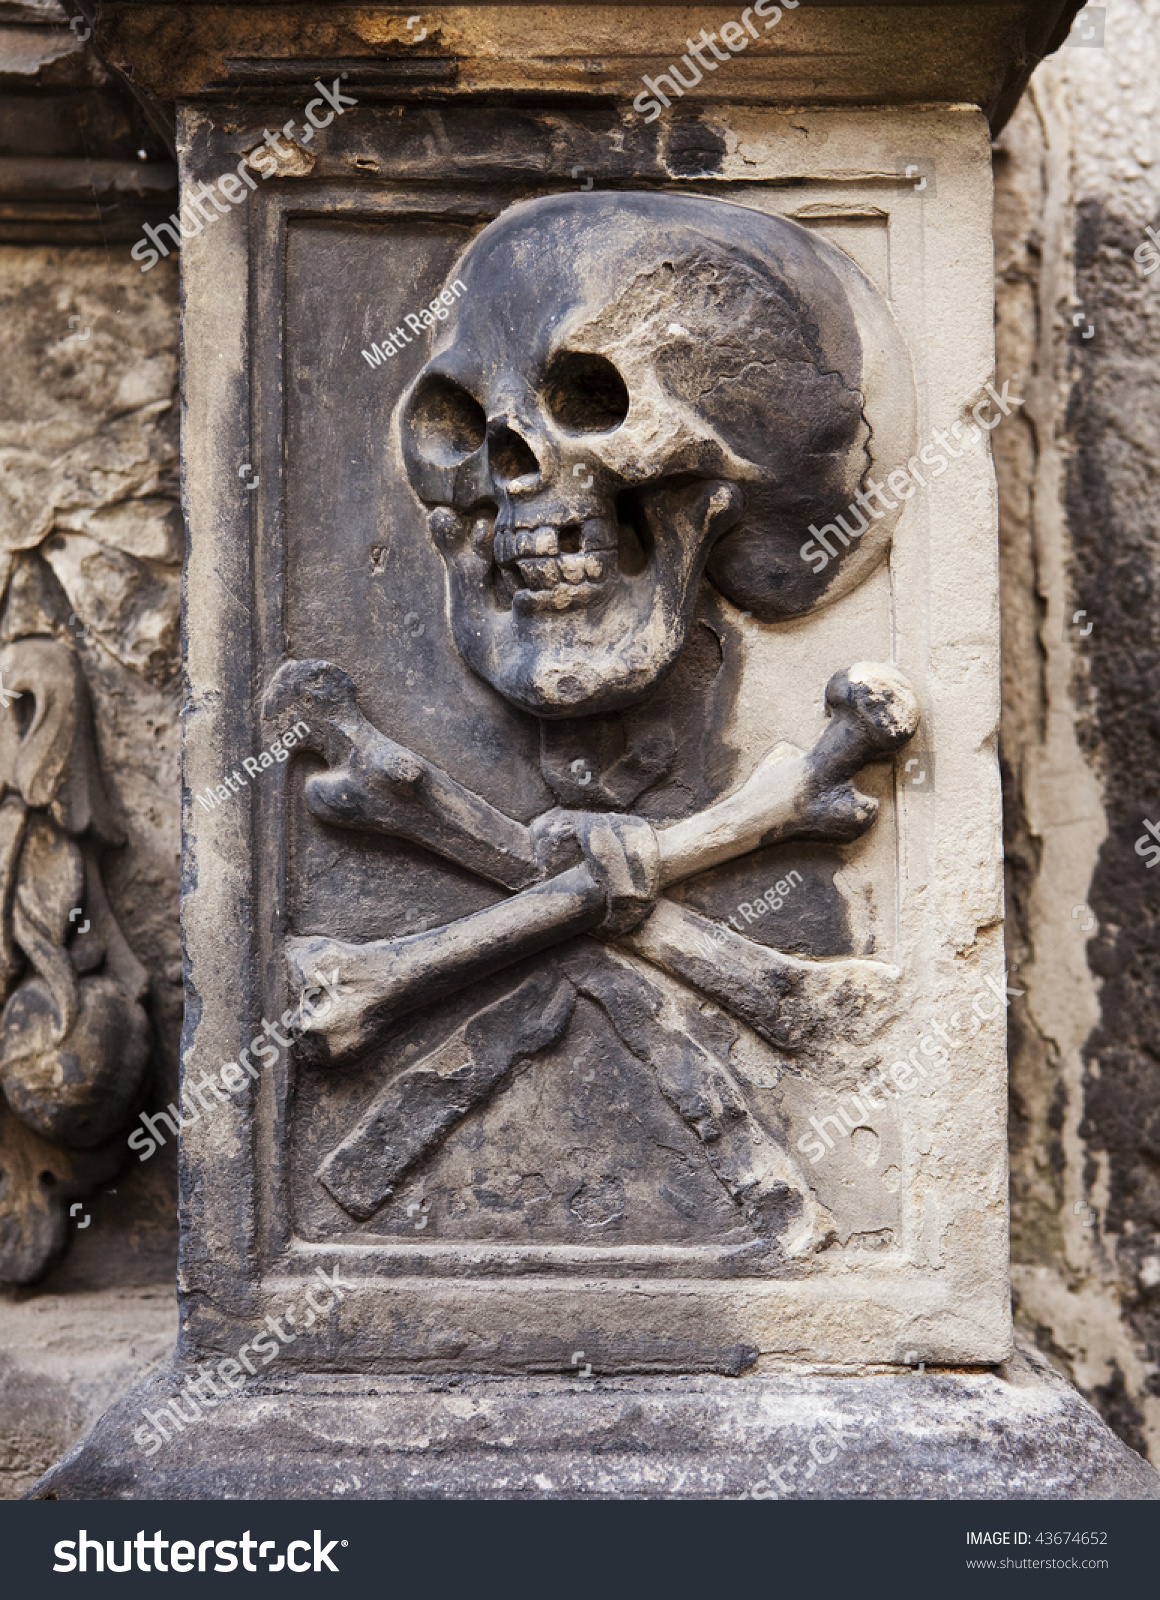 A grisly image of death grimacing with skull and